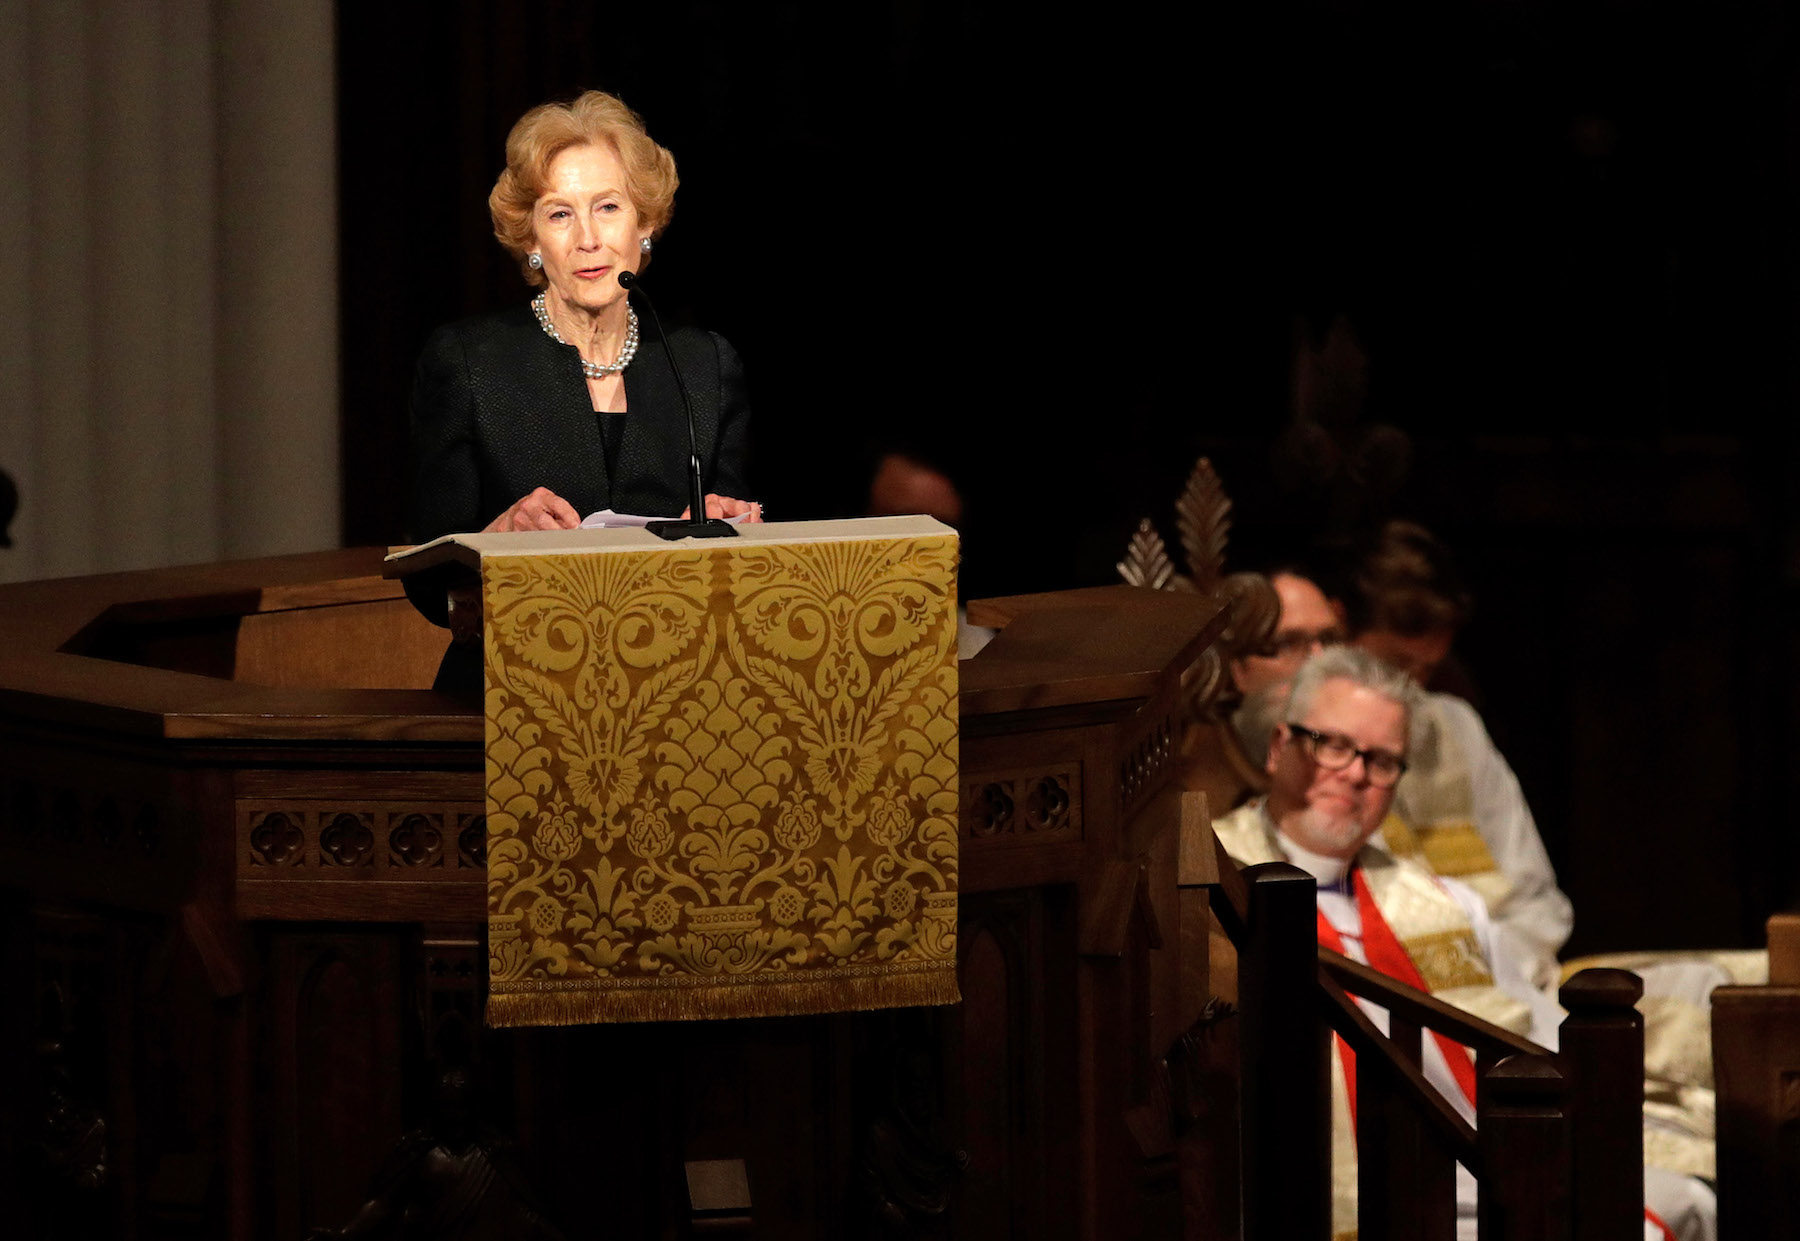 "<div class=""meta image-caption""><div class=""origin-logo origin-image none""><span>none</span></div><span class=""caption-text"">Susan Baker speaks during a funeral service for former first lady Barbara Bush at St. Martin's Episcopal Church, April 21, 2018 in Houston, Texas. (Getty David J. Phillip-Pool/Getty Images)</span></div>"